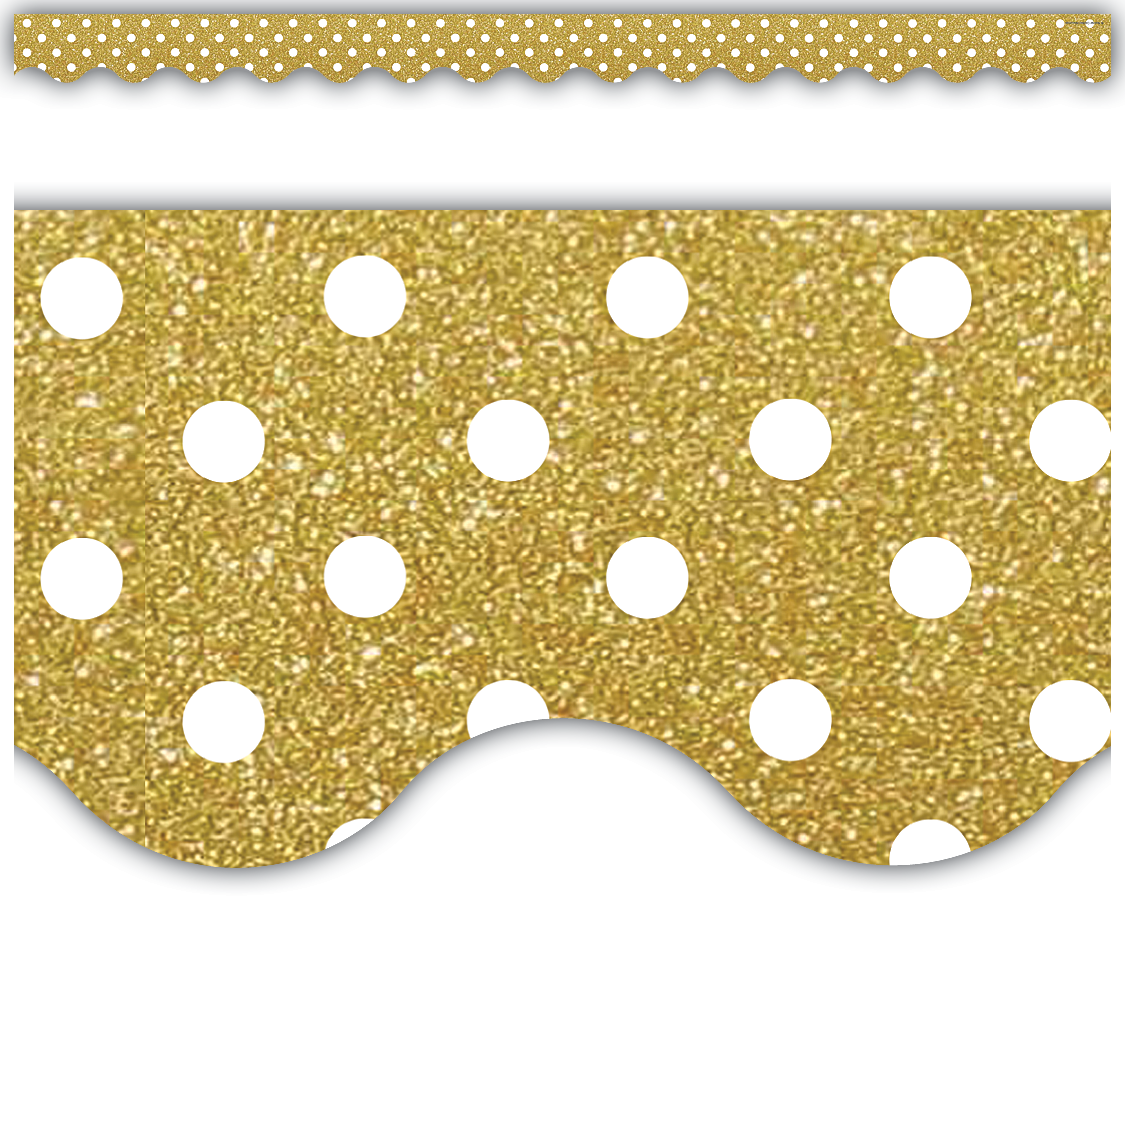 Gold Shimmer Polka Dot Scalloped Border Trim